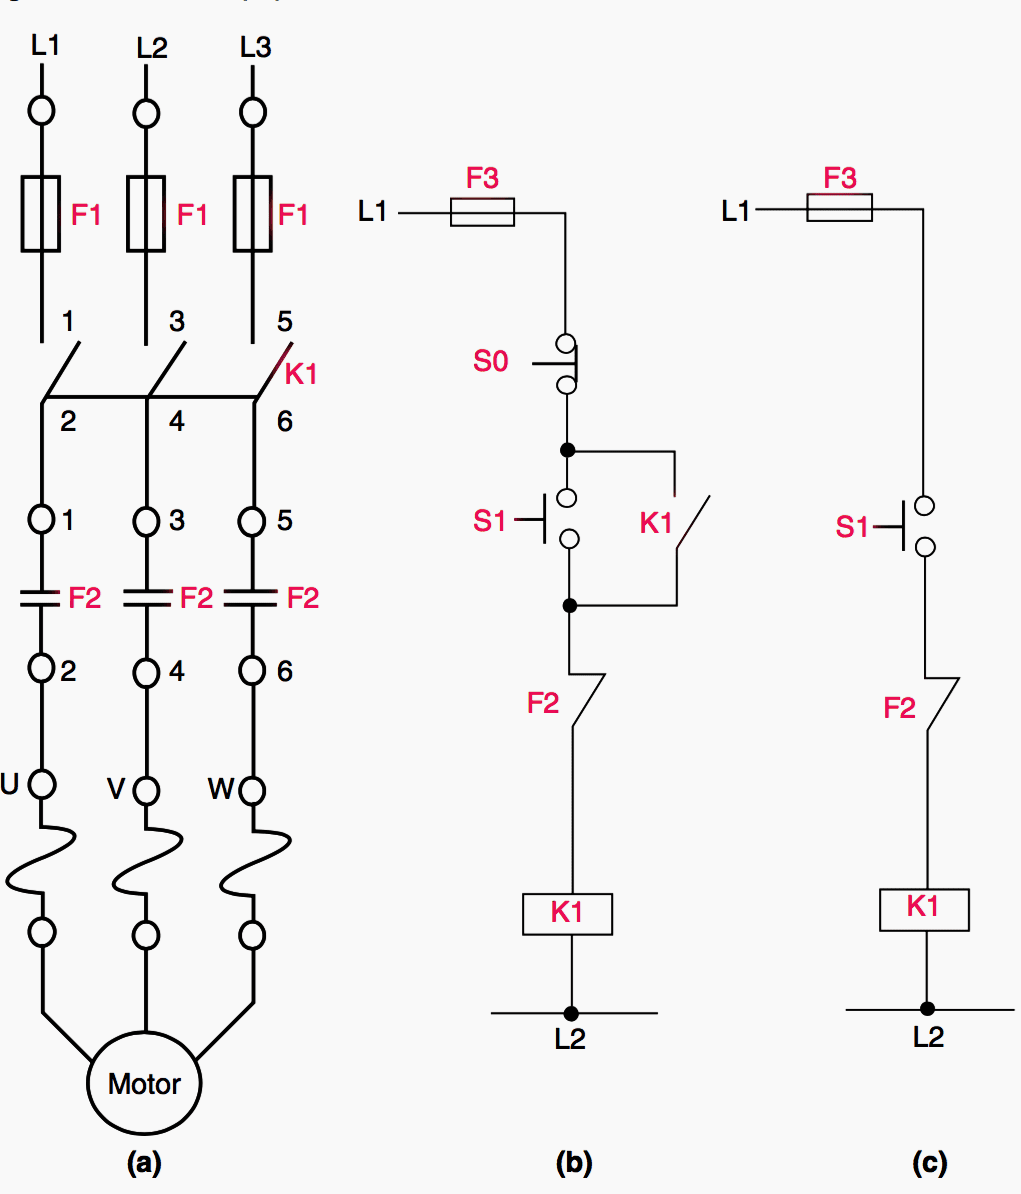 hight resolution of basic motor wiring diagram 26 wiring diagram images control wiring diagram of 3 phase motor control